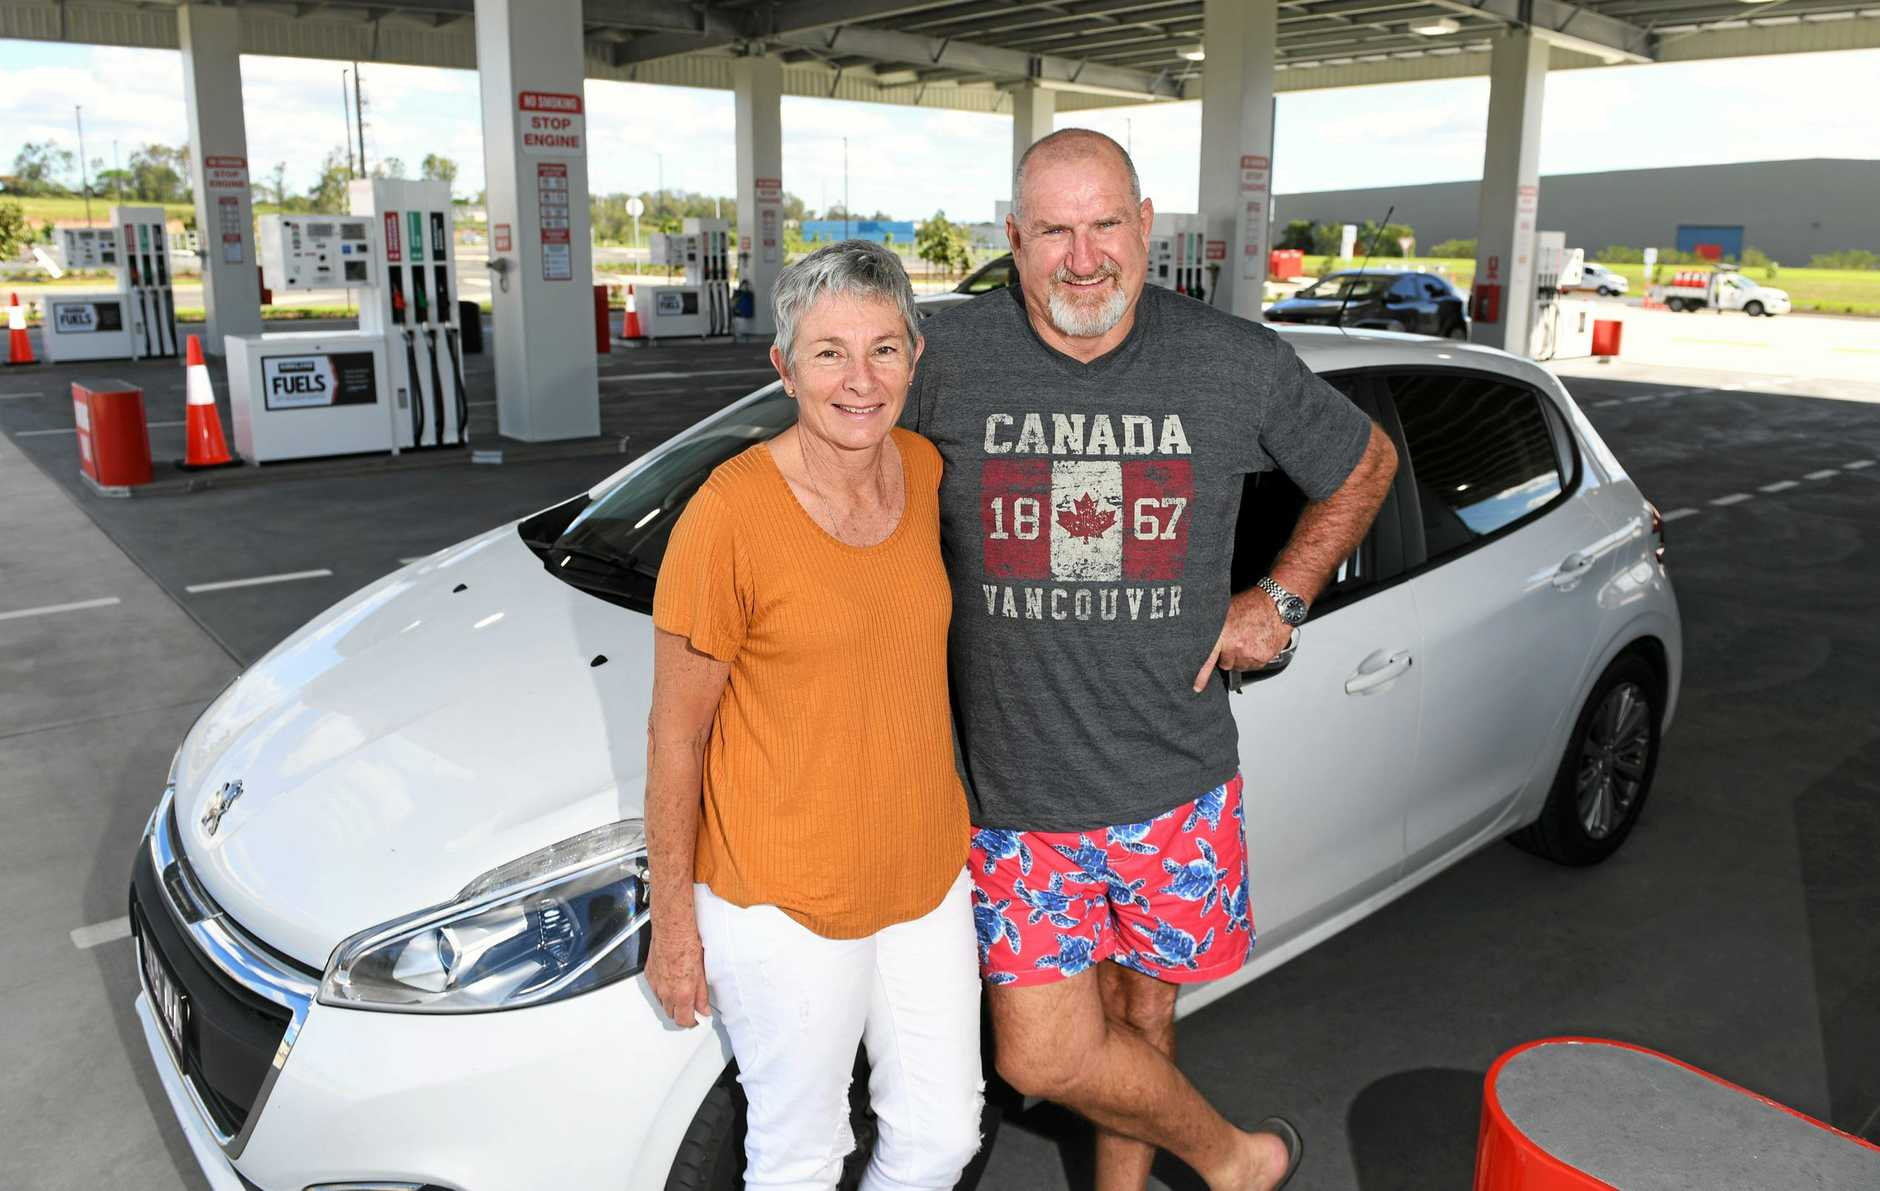 Janet and Dave Hines from Eastern Heights fill up at the new Costco service station.